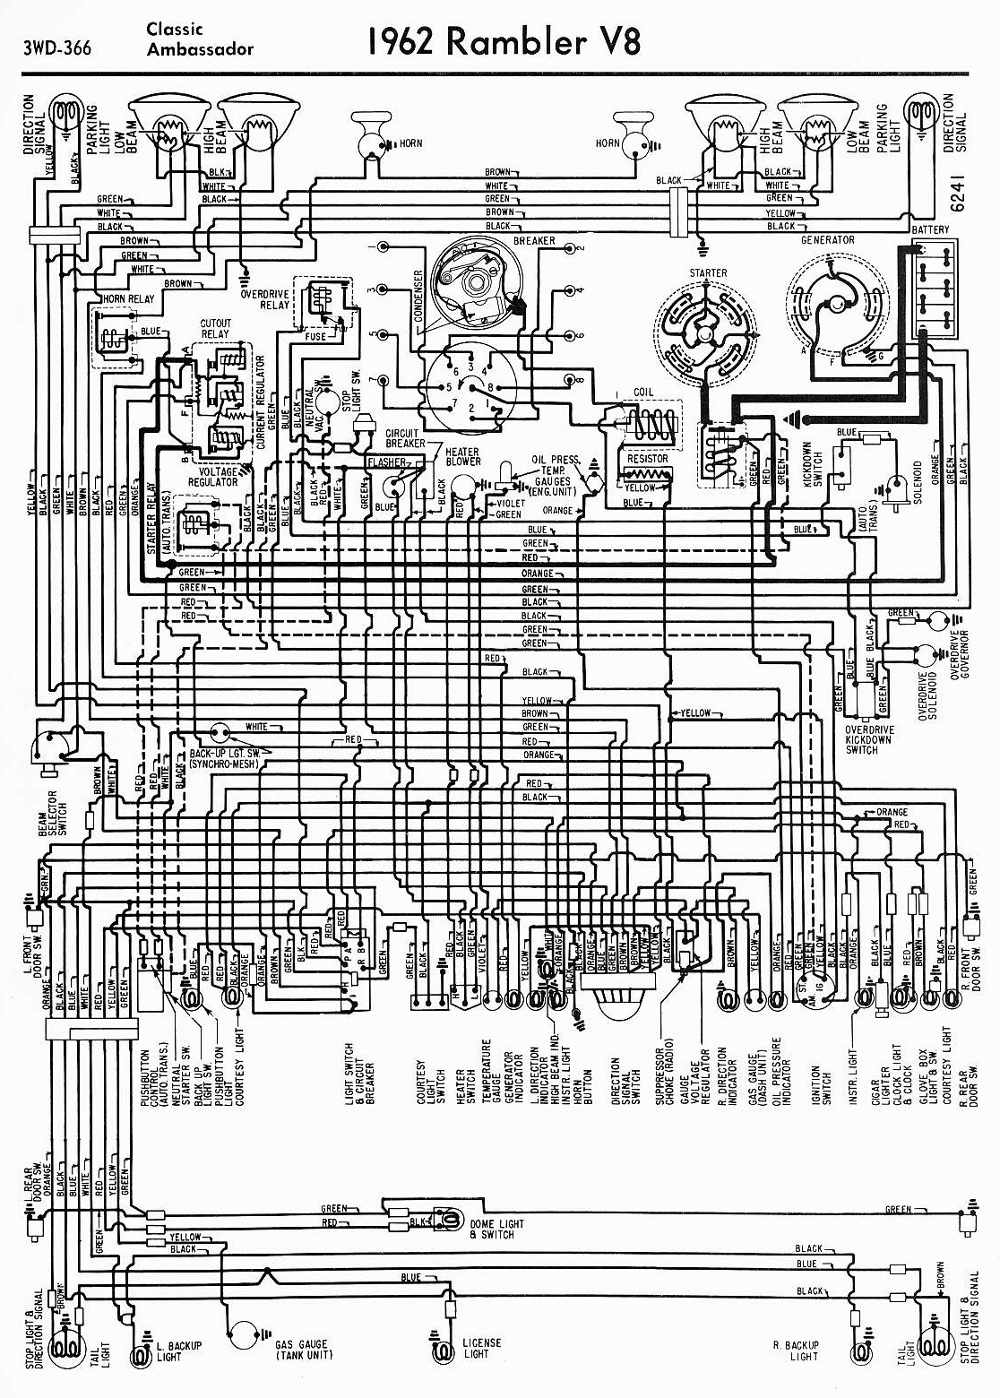 Classic Car Wiring Diagrams : Amc car manuals wiring diagrams pdf fault codes